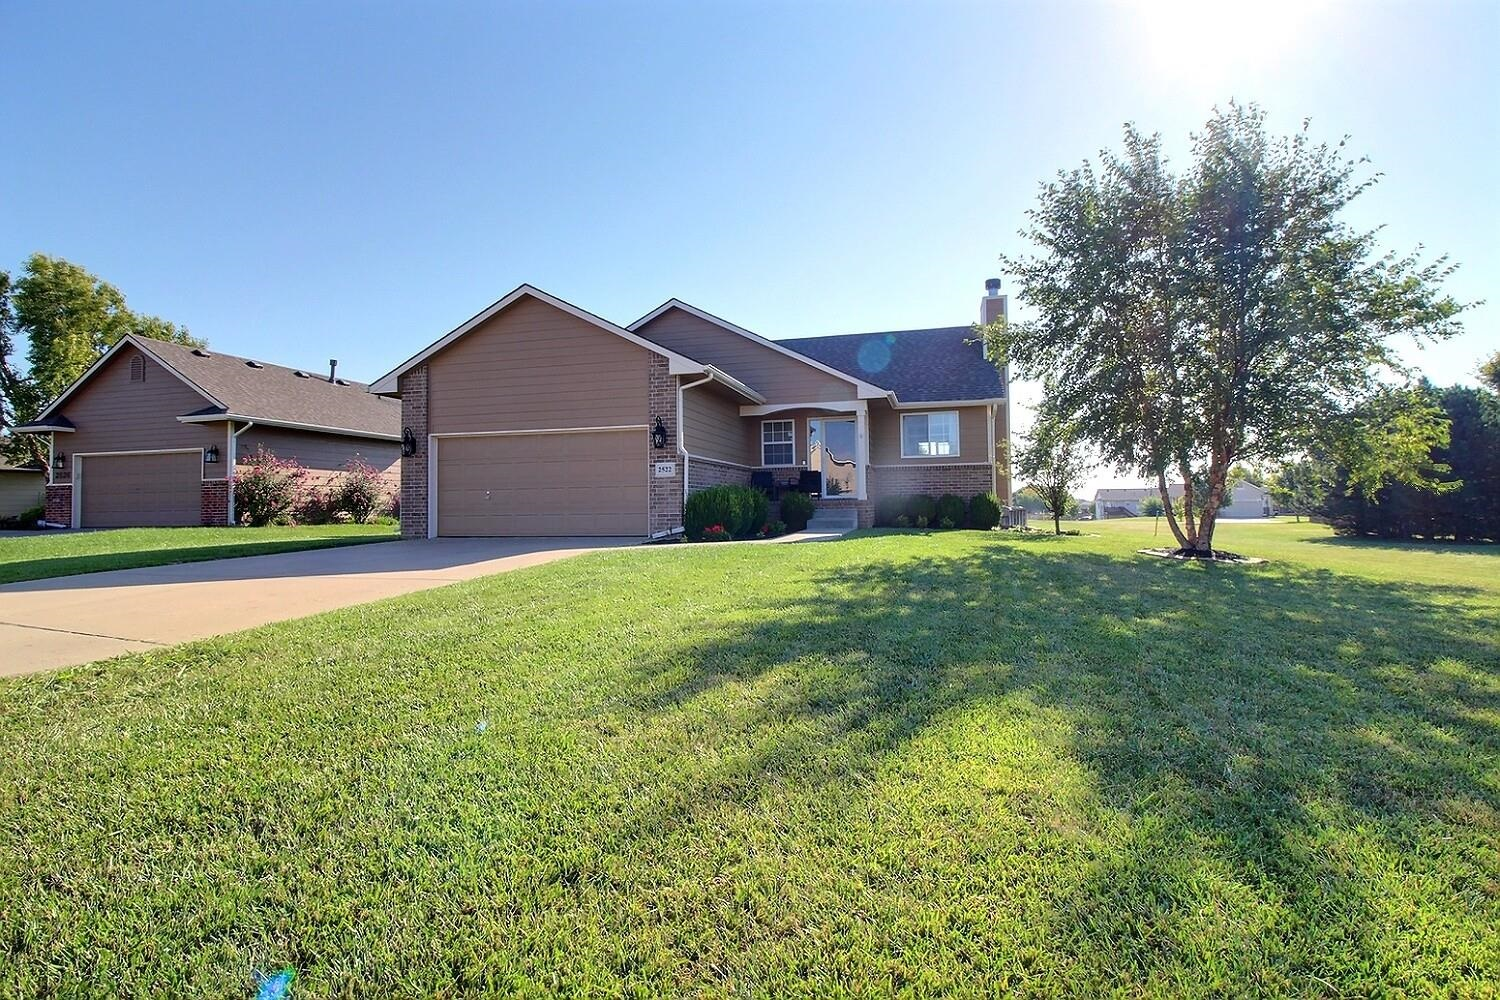 This house has it all! Great location in NE Wichita that is newly updated with upgrades through out